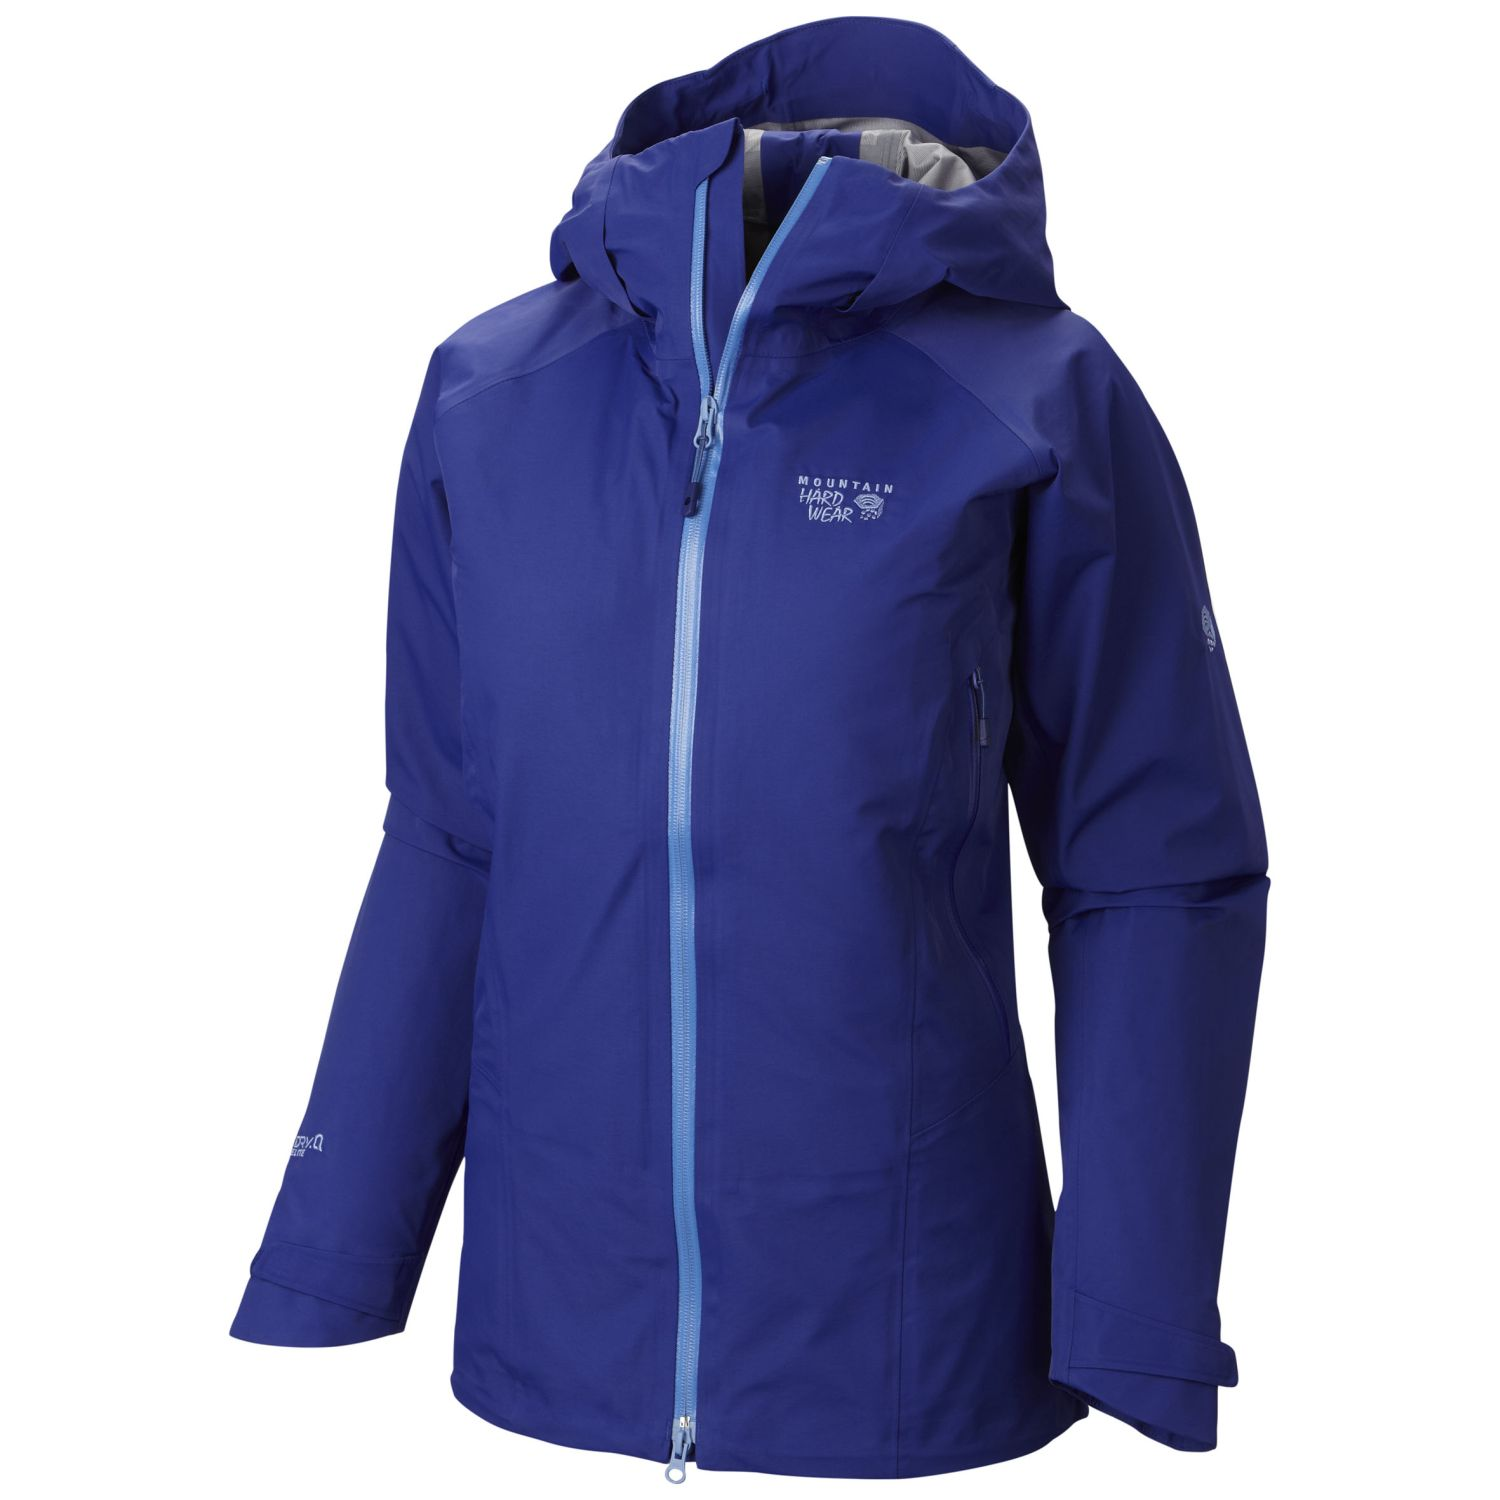 Torsun Jacket - Foto: Mountain Hardwear